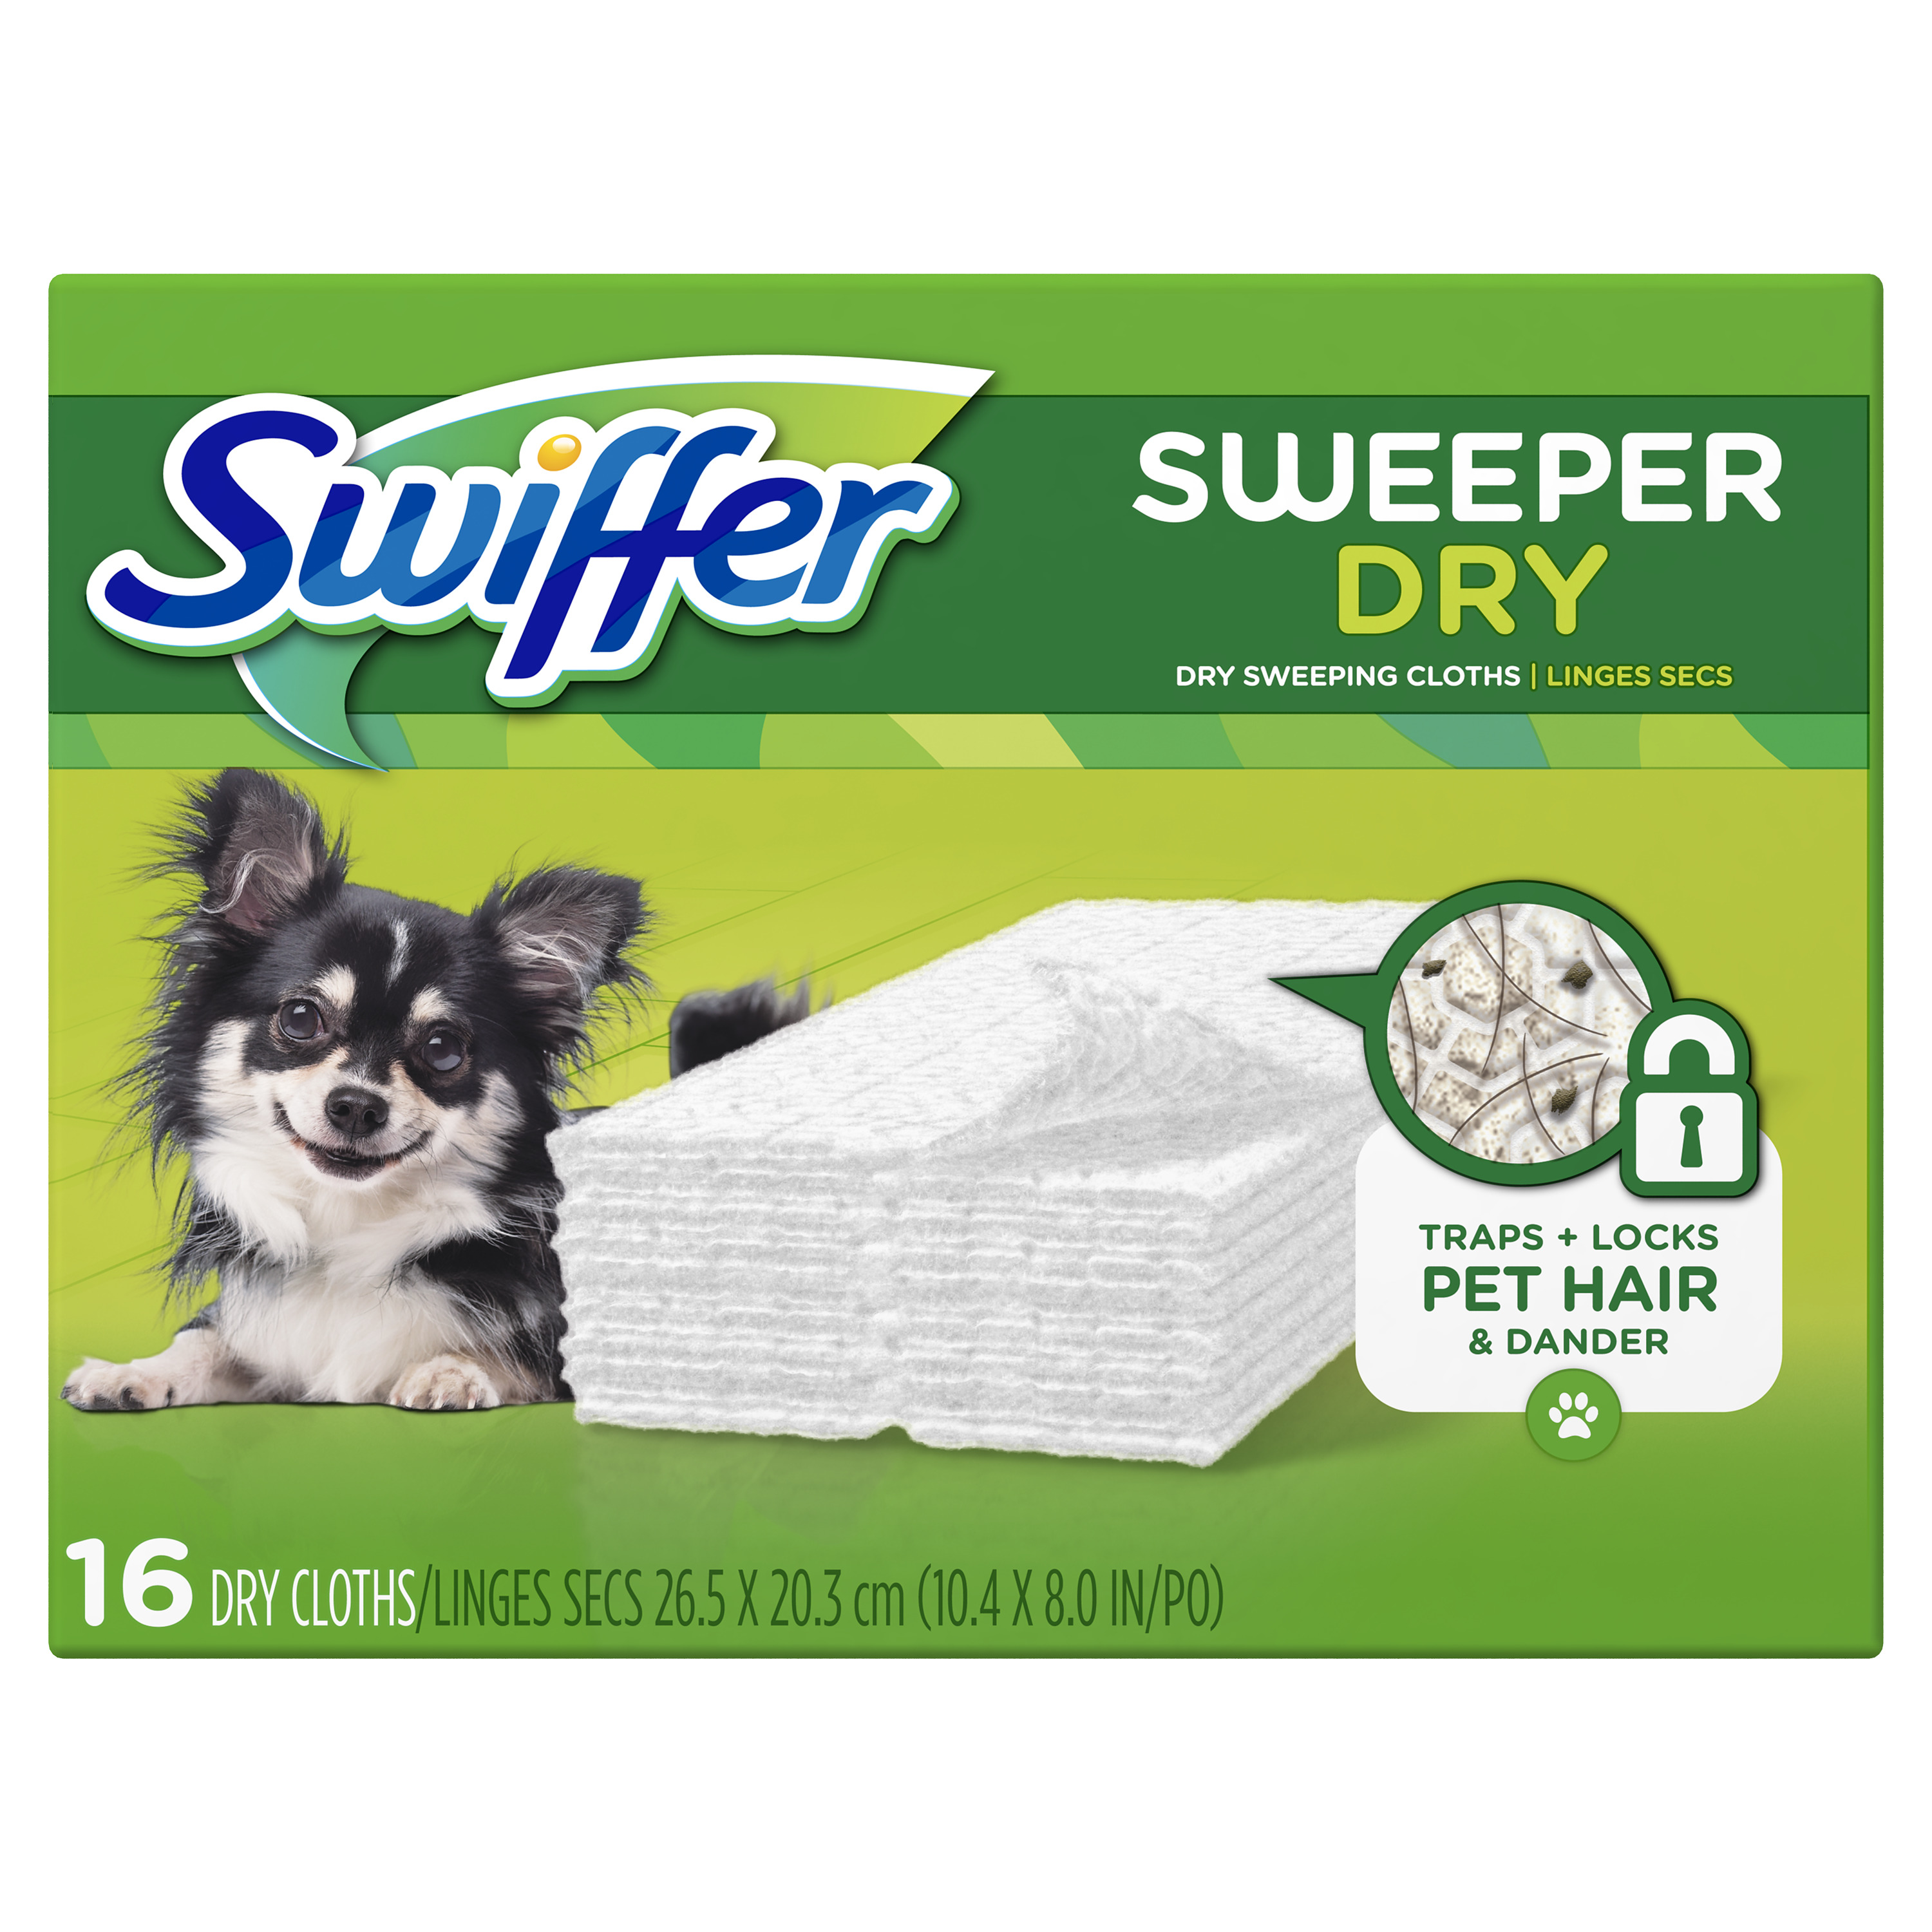 Swiffer Sweeper Dry Sweeping Pad Pet Multi Surface Refills for Dusters Floor Mop, Unscented, 16 Count